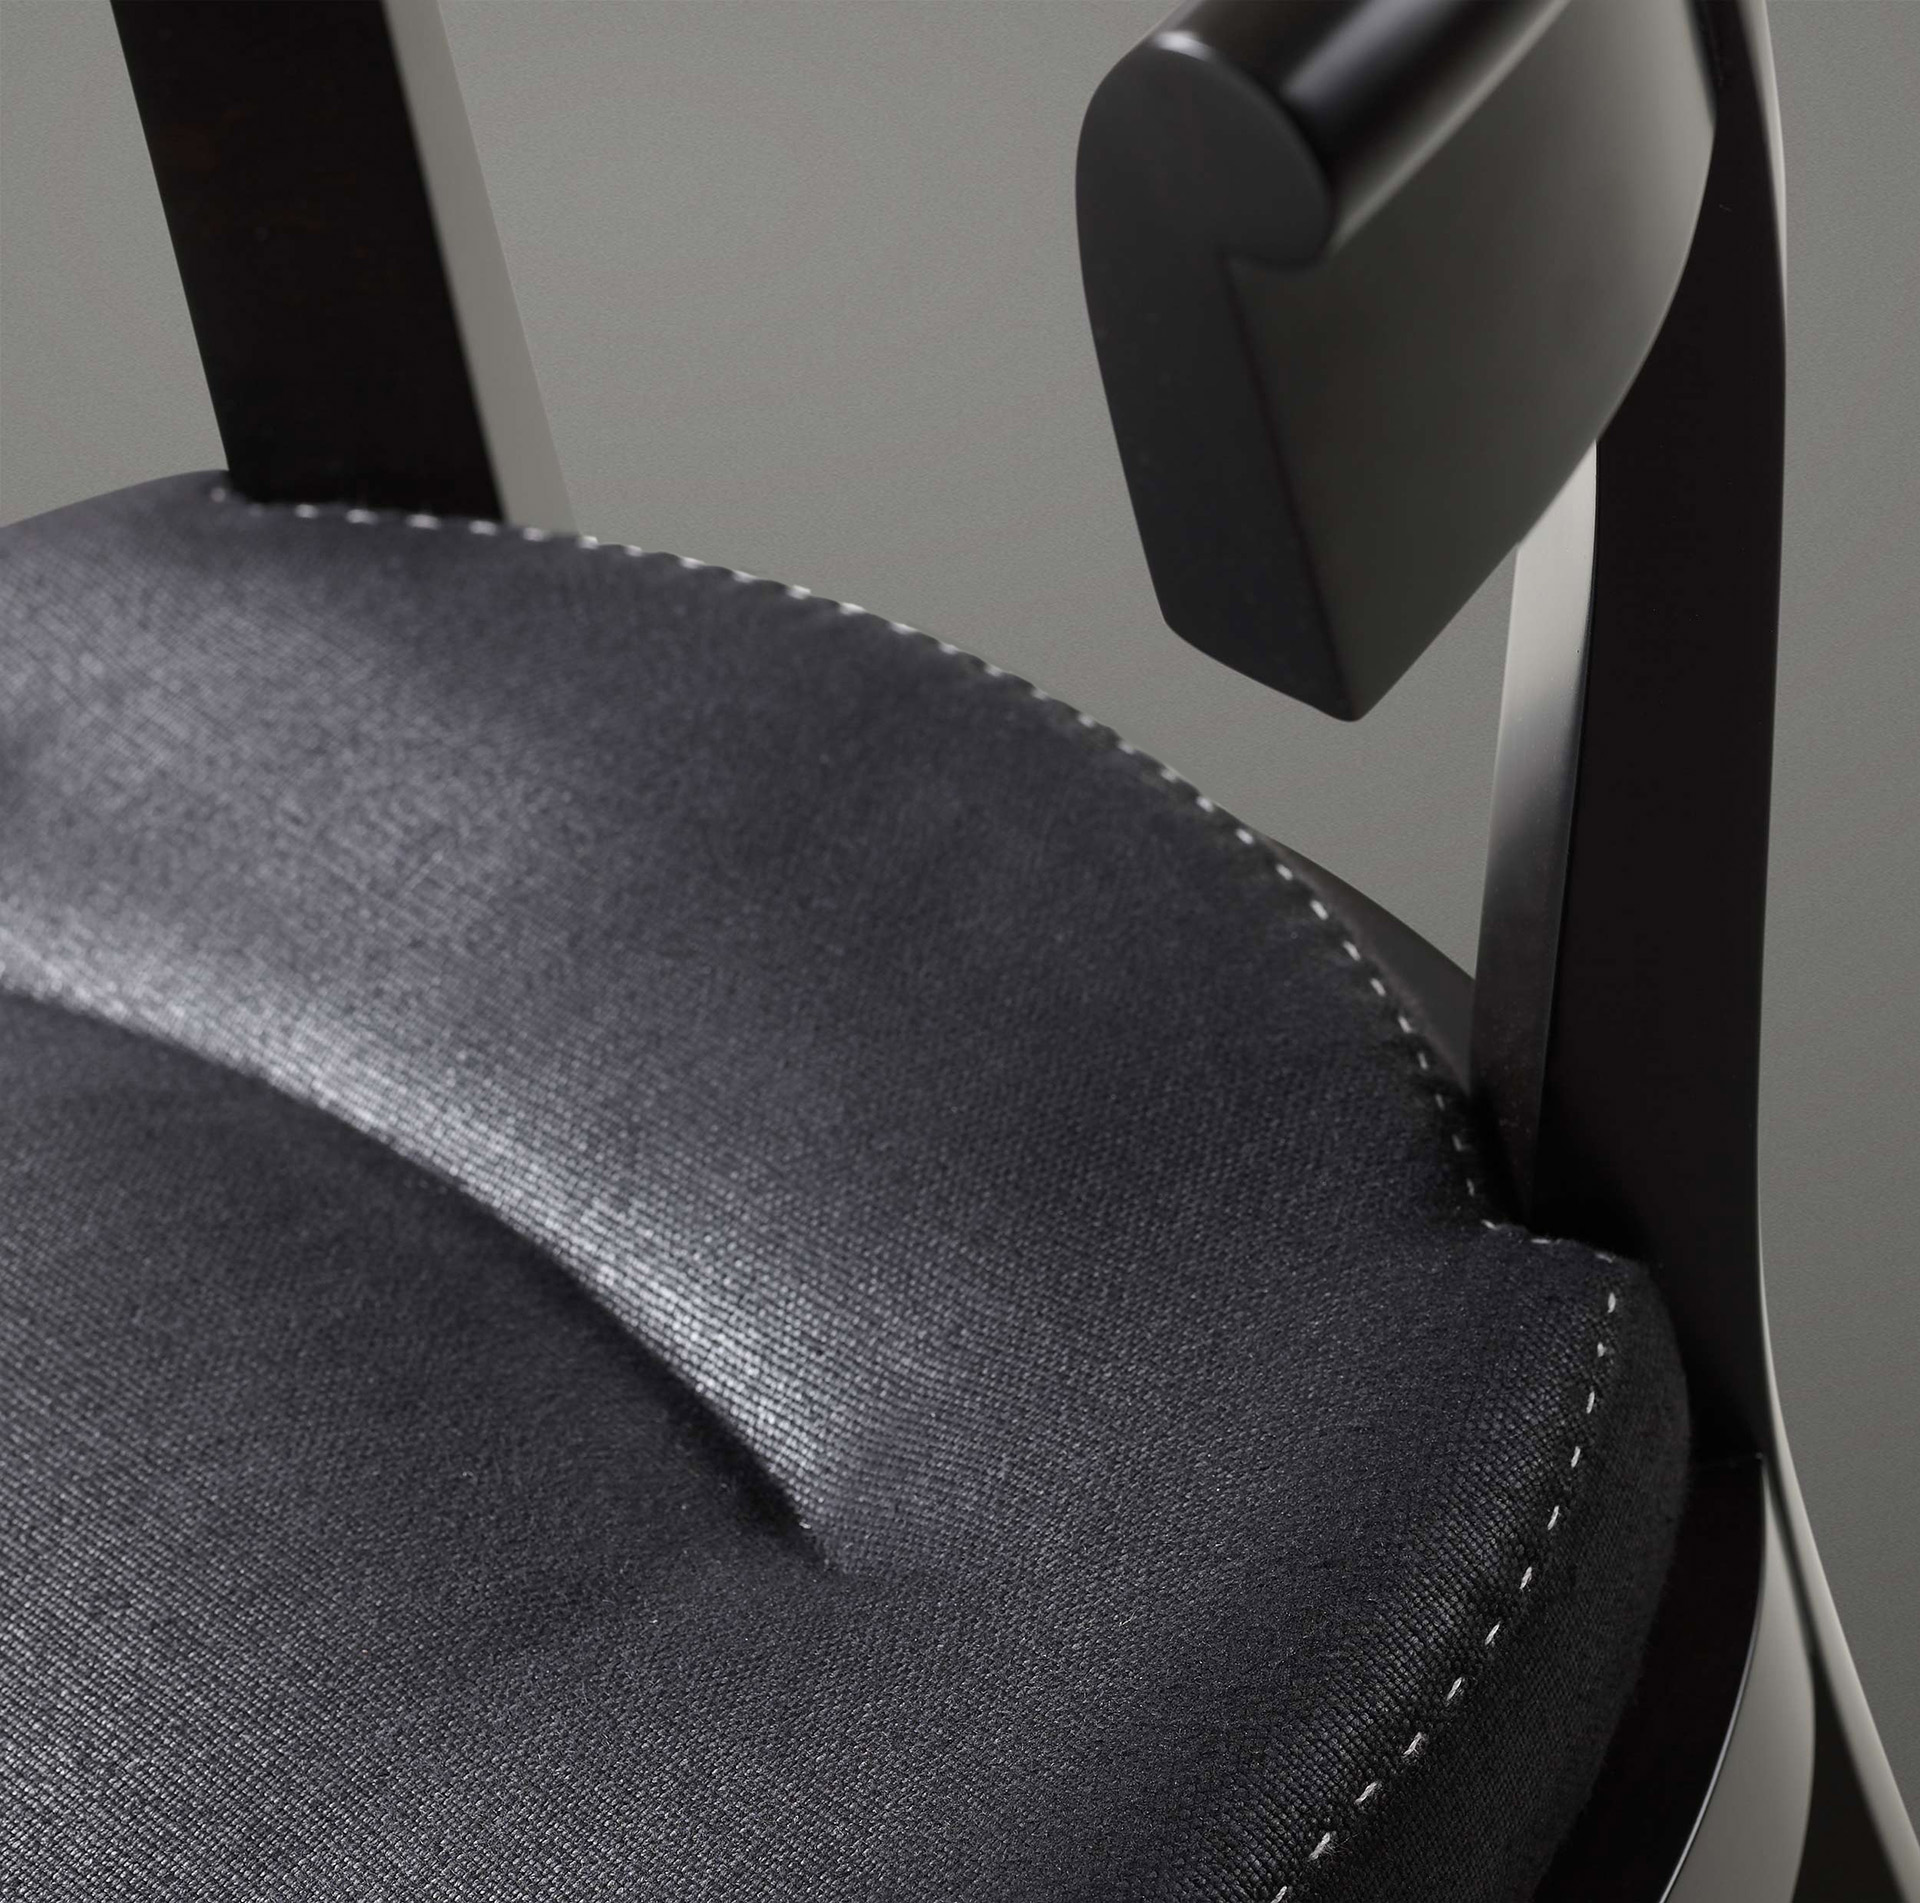 Seat detail of Irene, a wooden dining chair with a semi-circle backrest, from Promemoria's catalogue | Promemoria